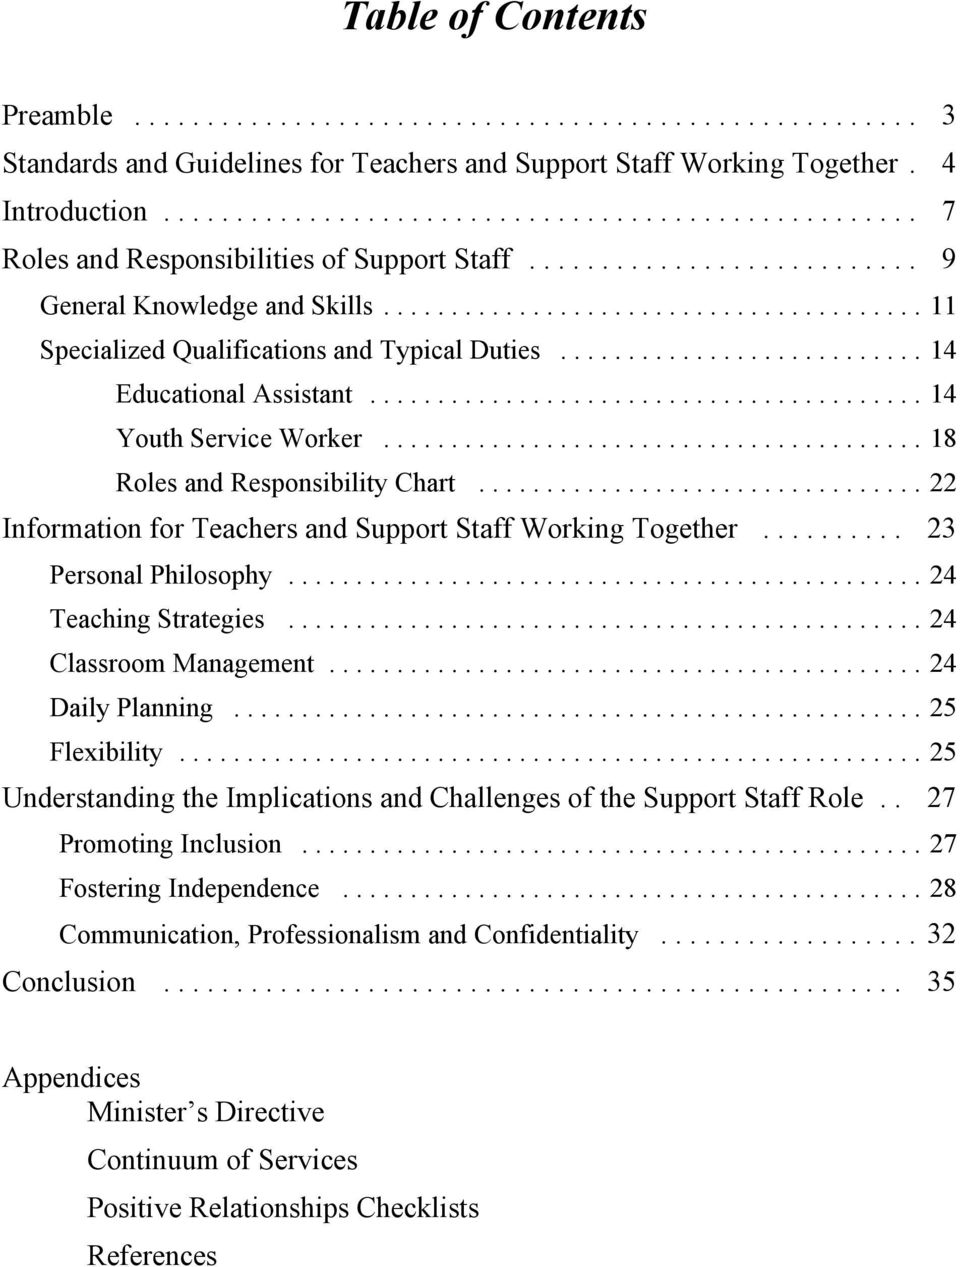 ..22 Information for Teachers and Support Staff Working Together... 23 Personal Philosophy...24 Teaching Strategies...24 Classroom Management...24 Daily Planning...25 Flexibility.